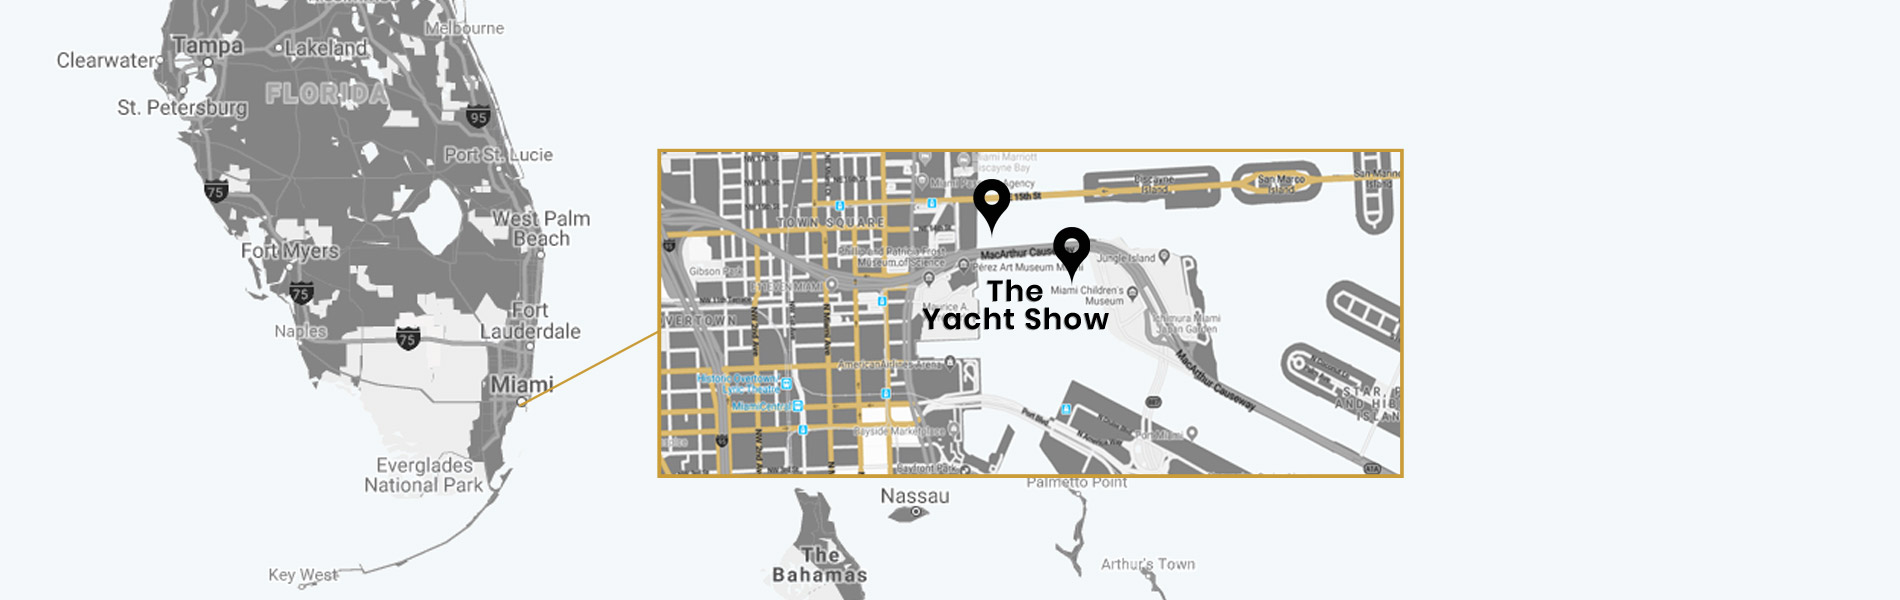 miami international yacht show 2019 downtown miami and watson